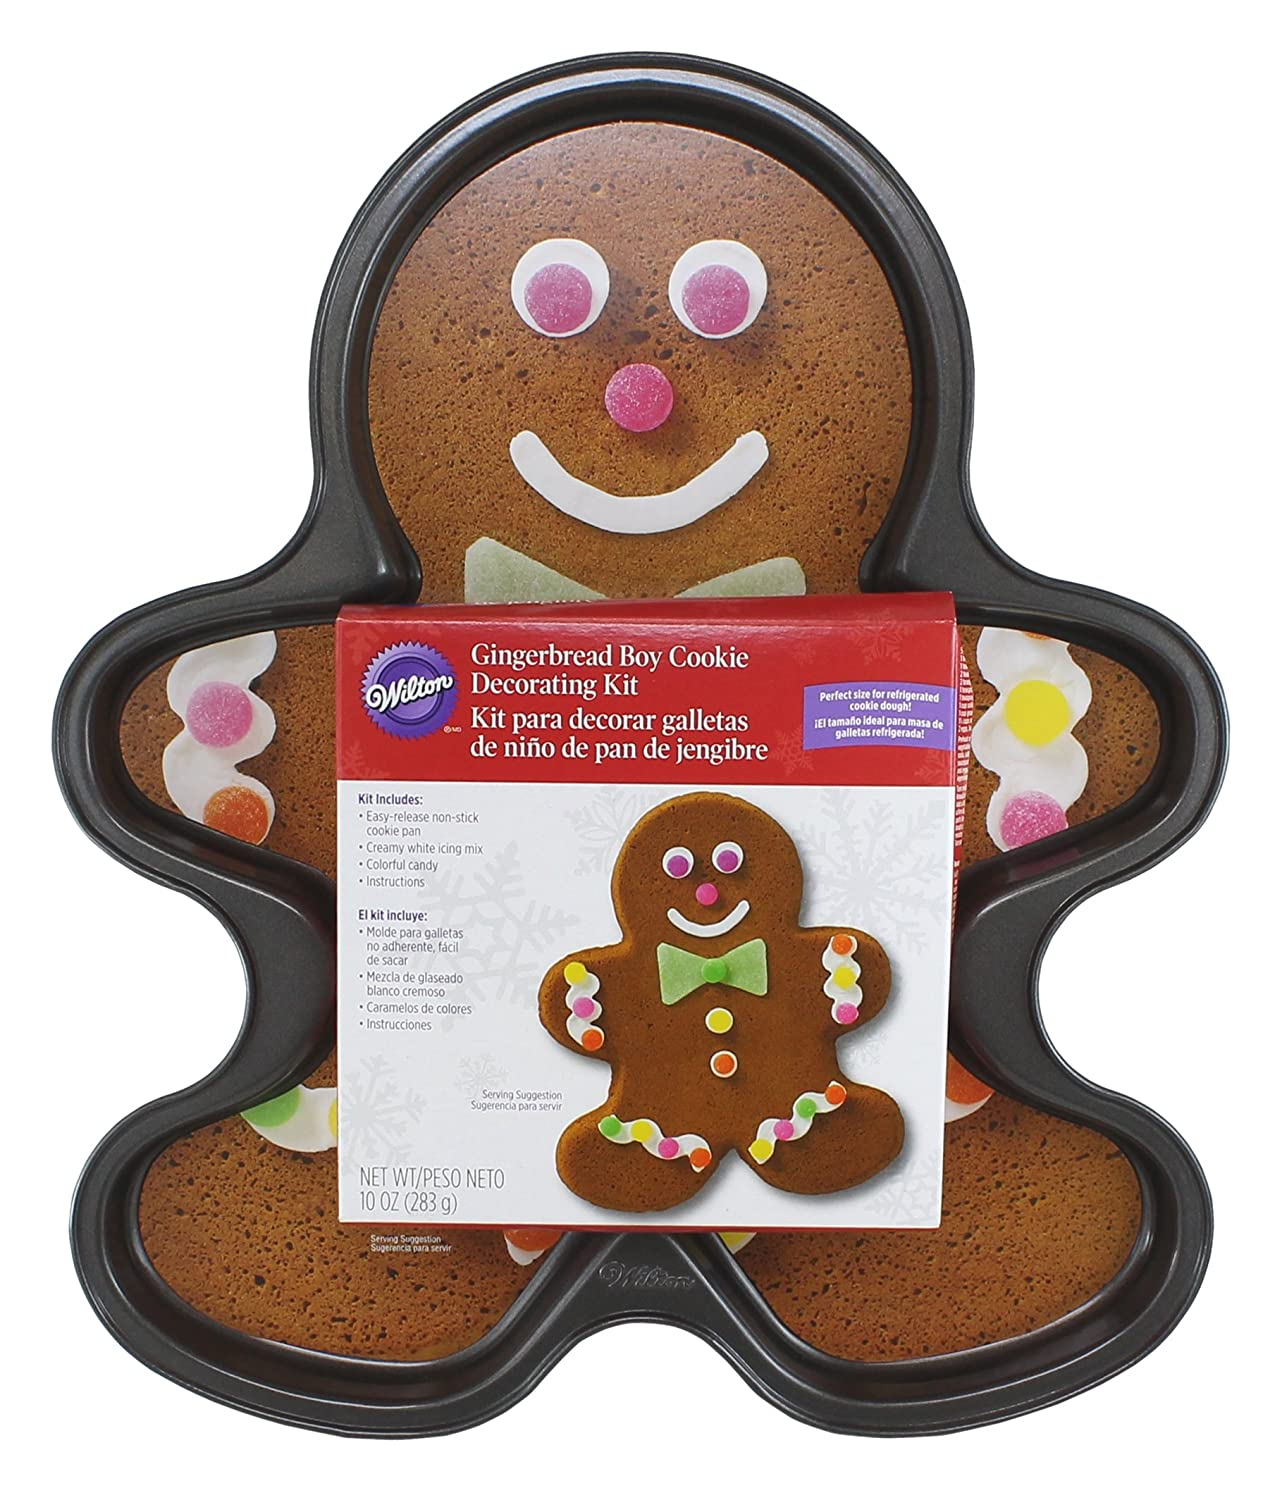 Amazon.com: WILTON Giant Non-Stick Gingerbread Boy Pan With Decorating Kit: Baking Sheets: Kitchen & Dining